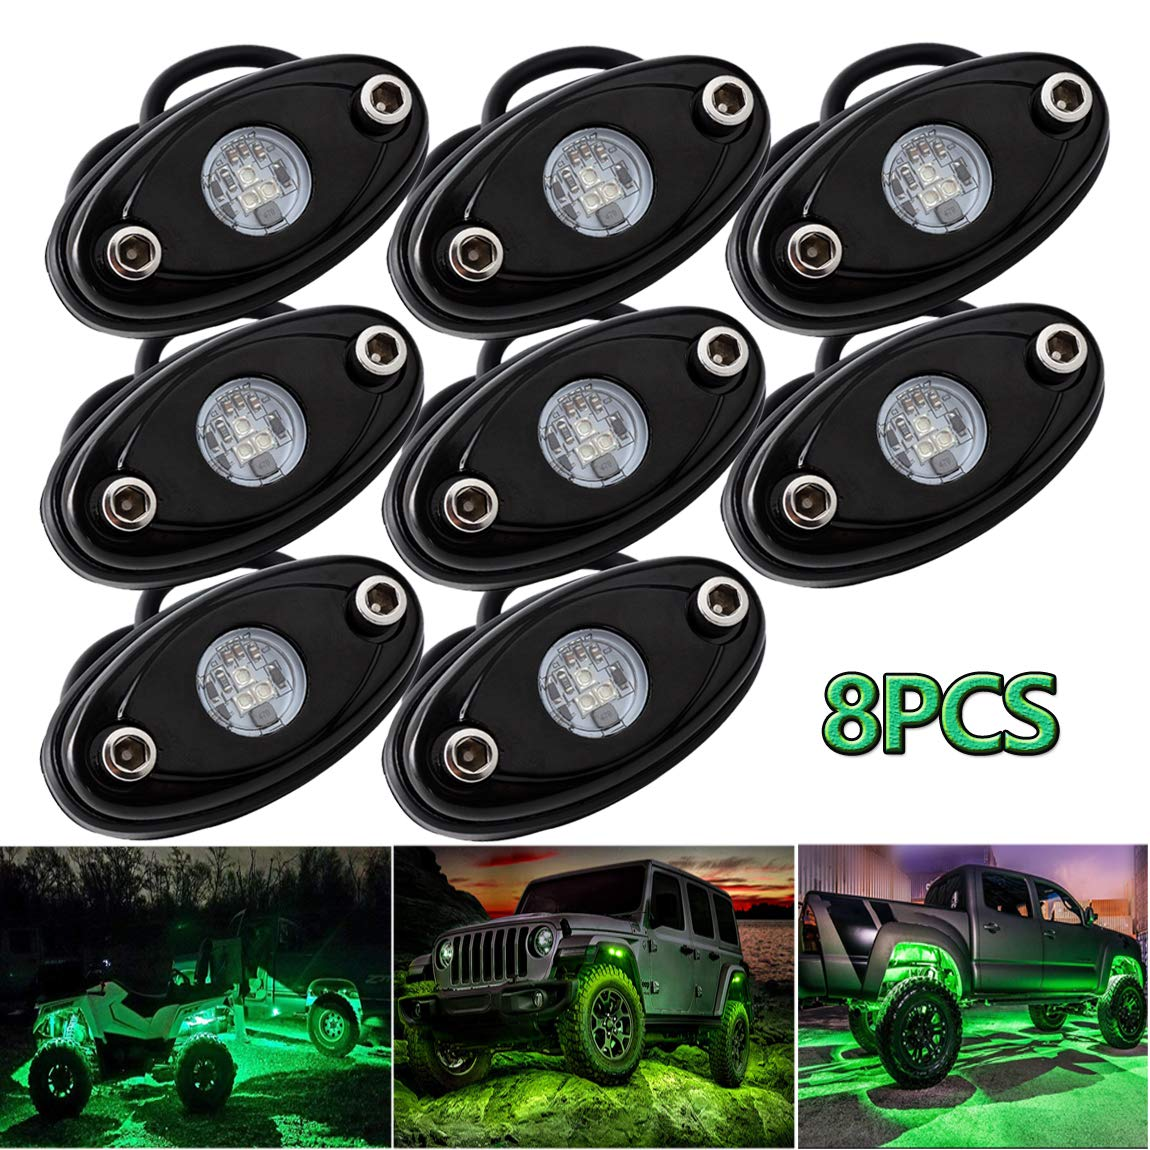 LEDMIRCY LED Rock Lights Green Kit 8PCS for JEEP Off Road Truck Car Boat ATV SUV Waterproof High Power Underbody Neon Trail Lights Underglow Lights Interior Exterior Shockproof(8PCS-Green)